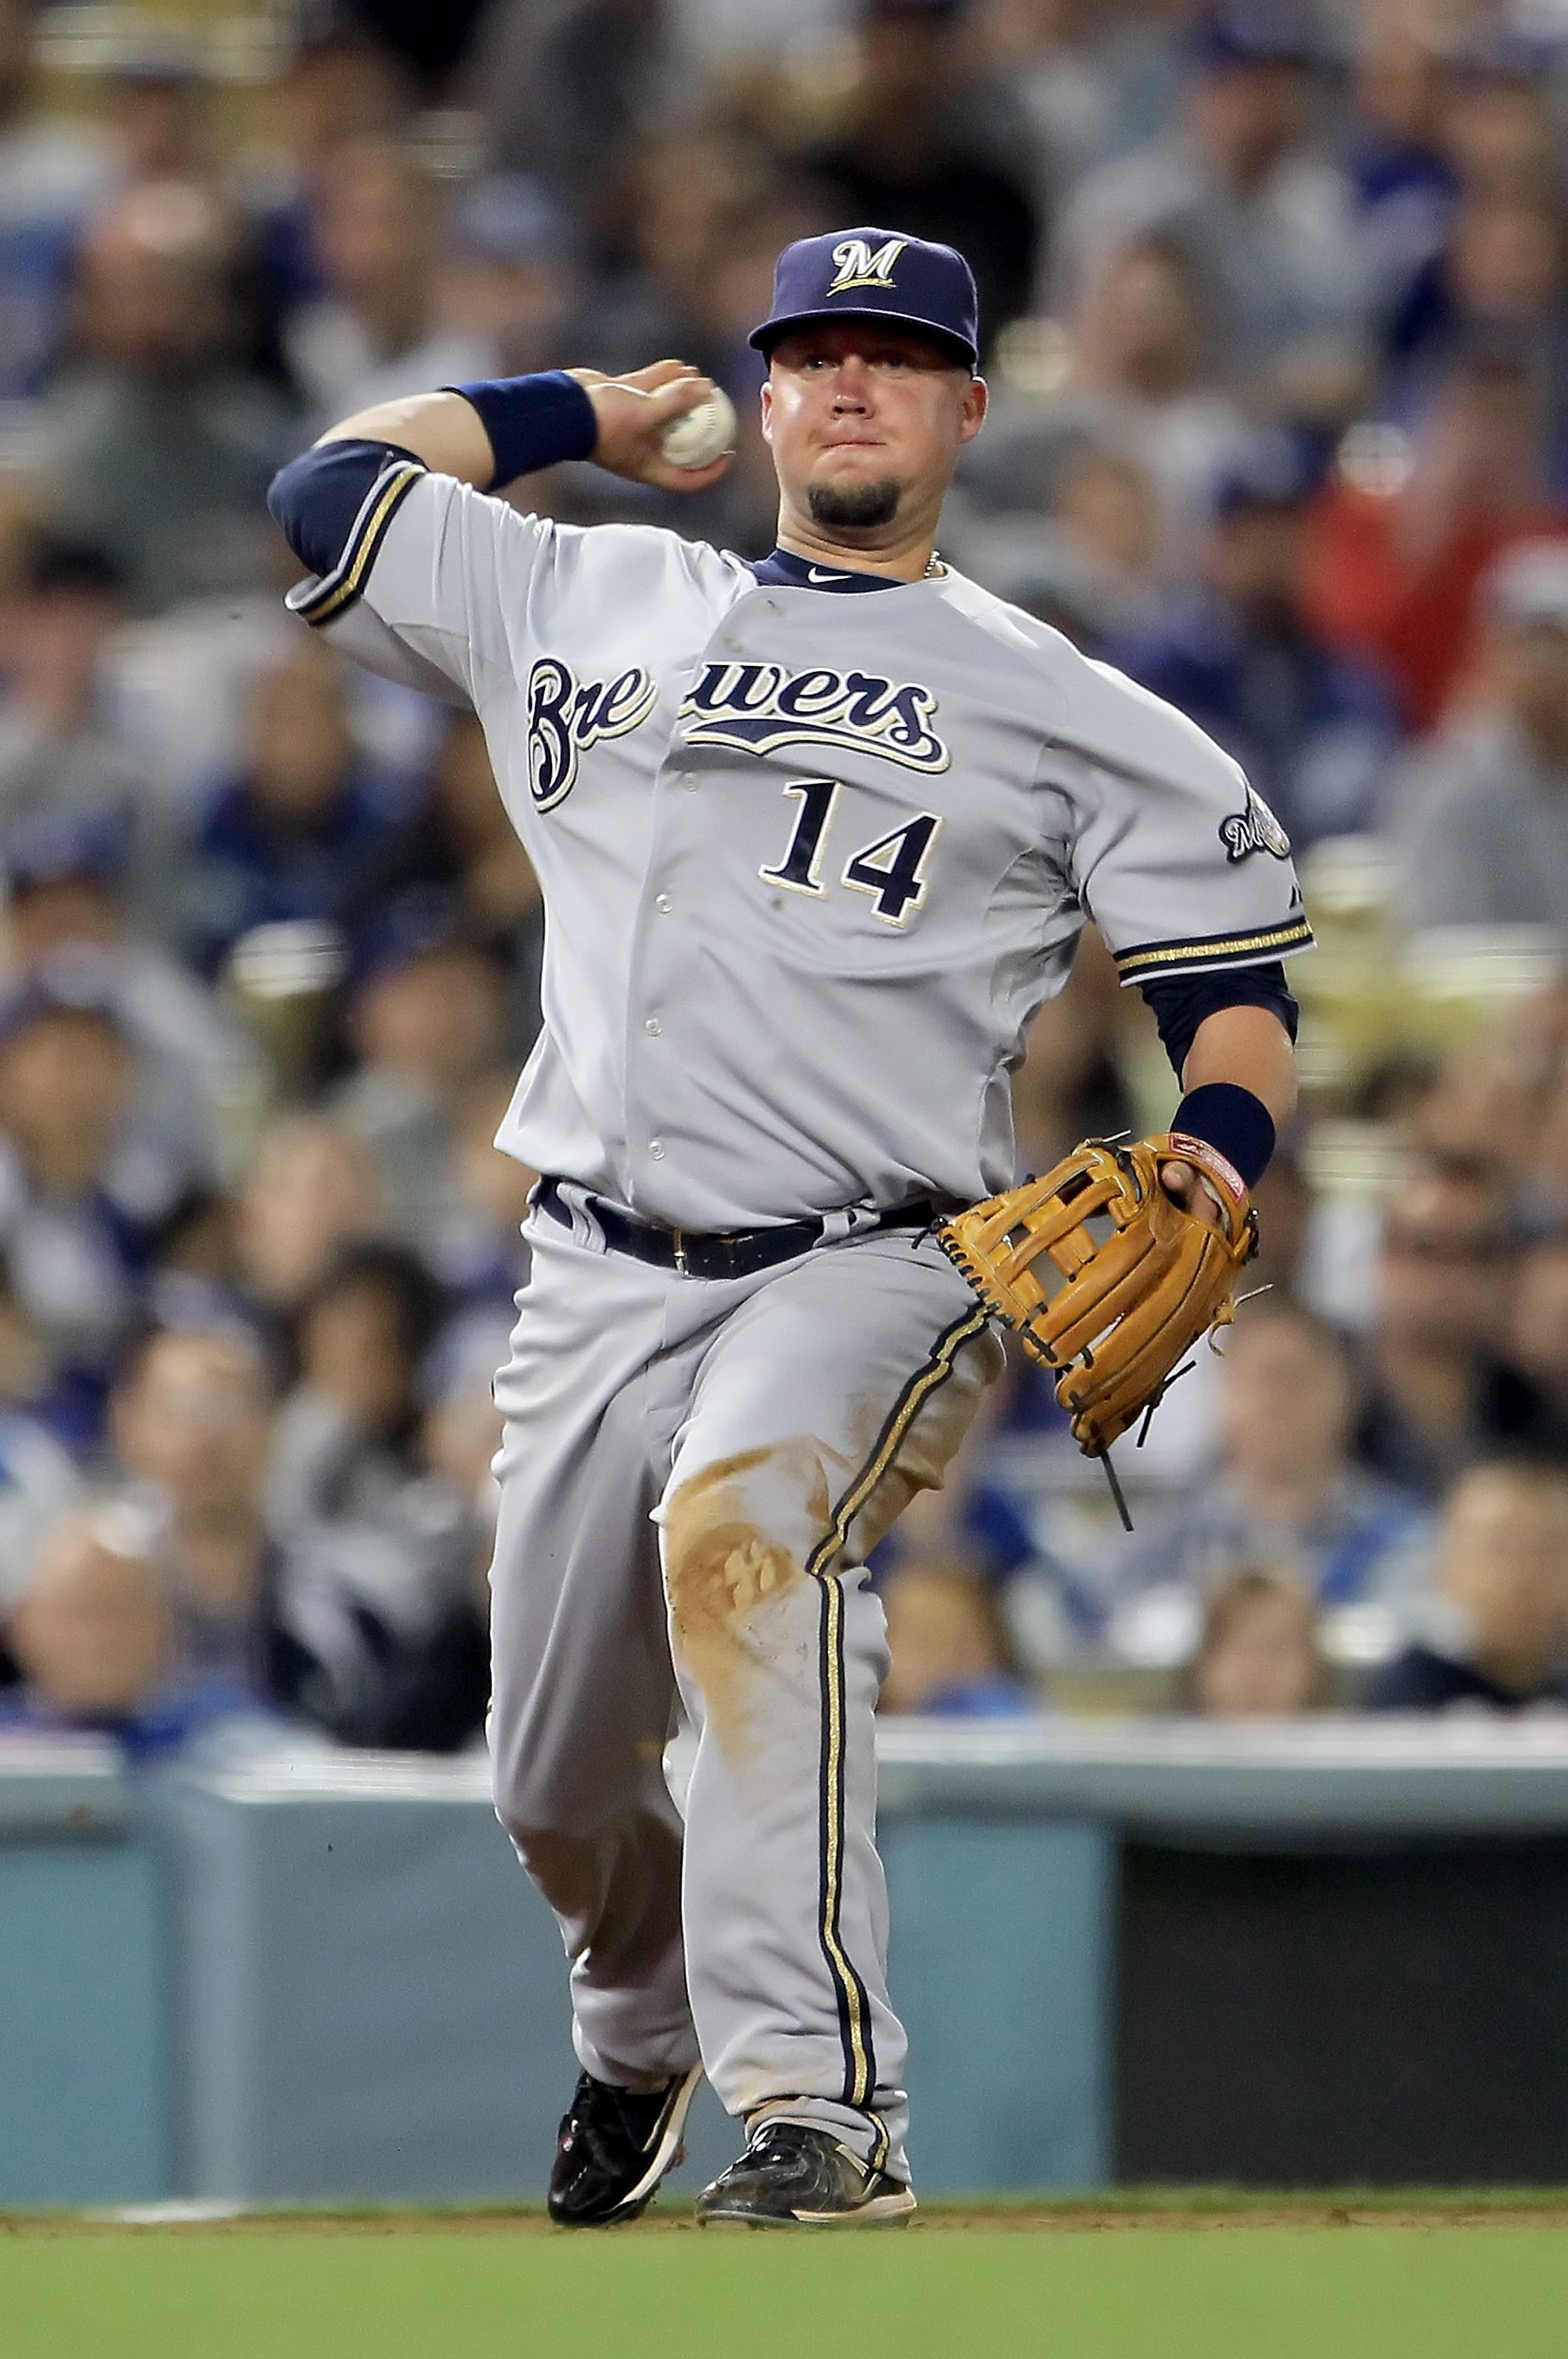 LOS ANGELES, CA - MAY 04:  Casey McGehee #14 of the Milwaukee Brewers throws to first base against the Los Angeles Dodgers at Dodger Stadium on May 4, 2010 in Los Angeles, California. The Brewers defeated the Dodgers 11-6.  (Photo by Jeff Gross/Getty Imag